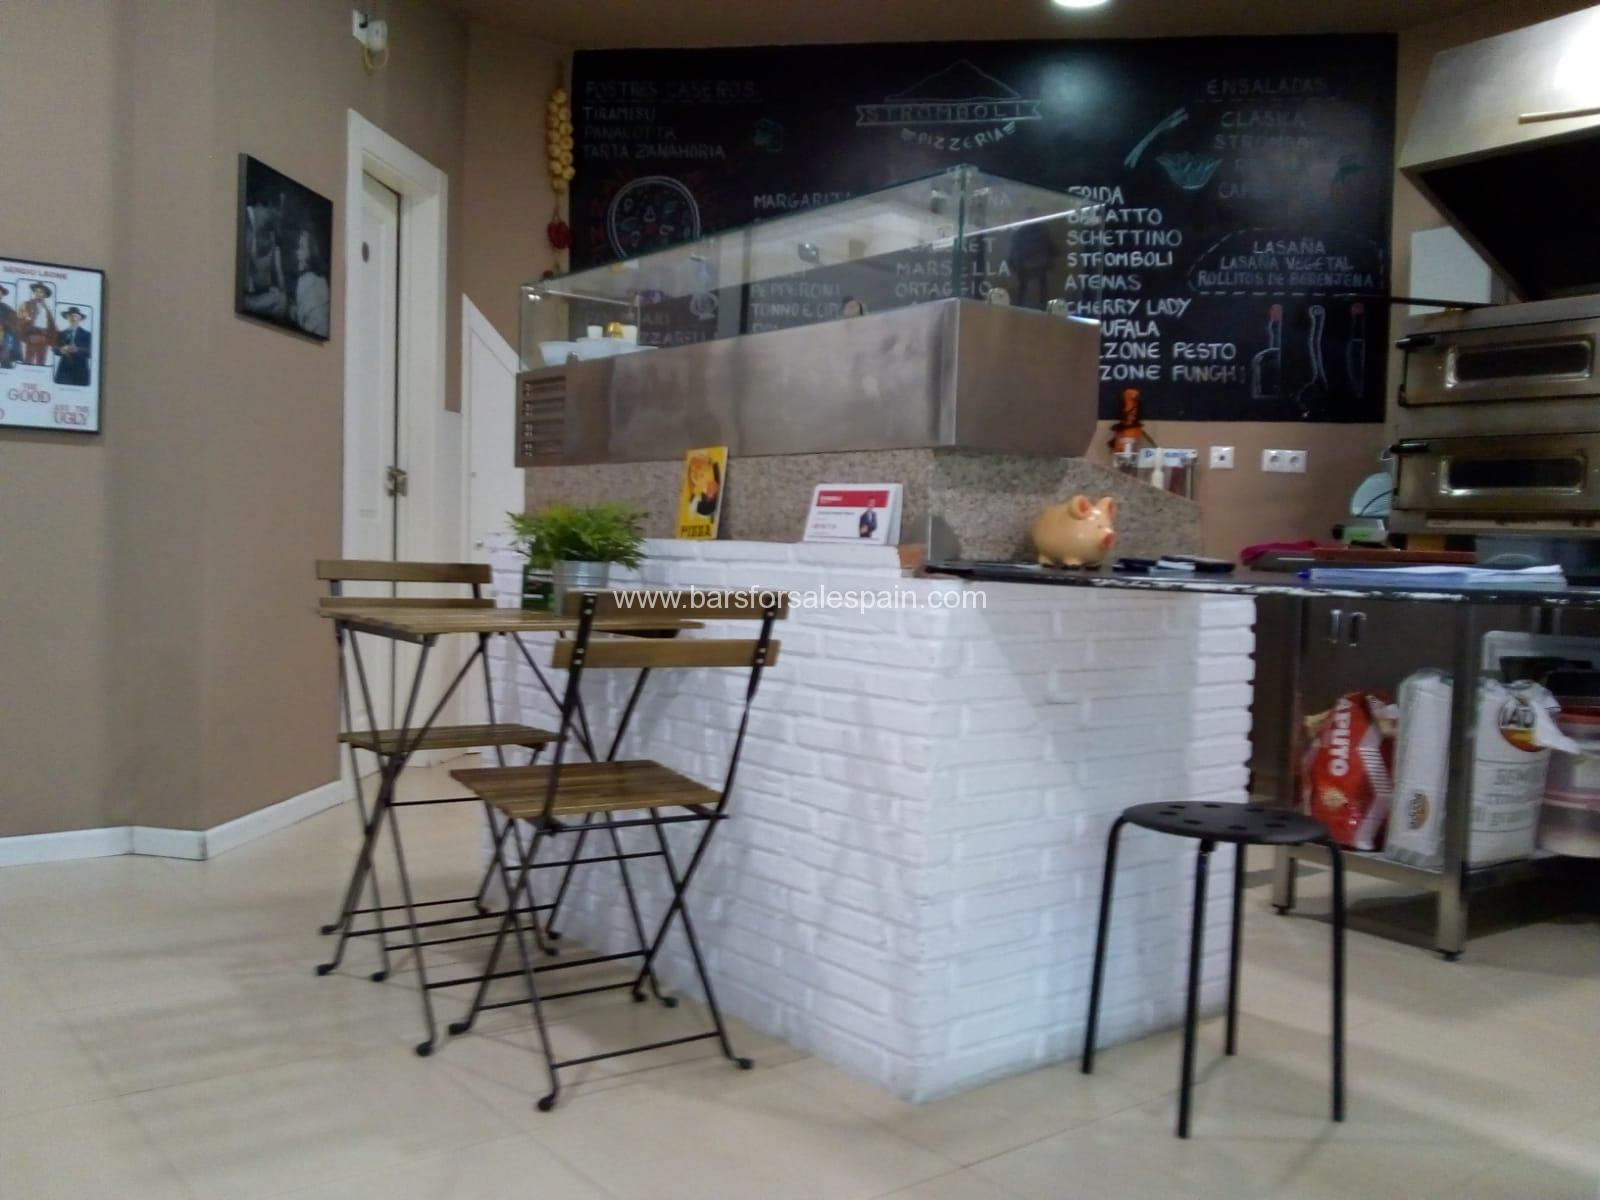 Nice And Cozy Bar Restaurant Take Away In Fuengirola Costa Del Sol Spain Bars For Sale Spain